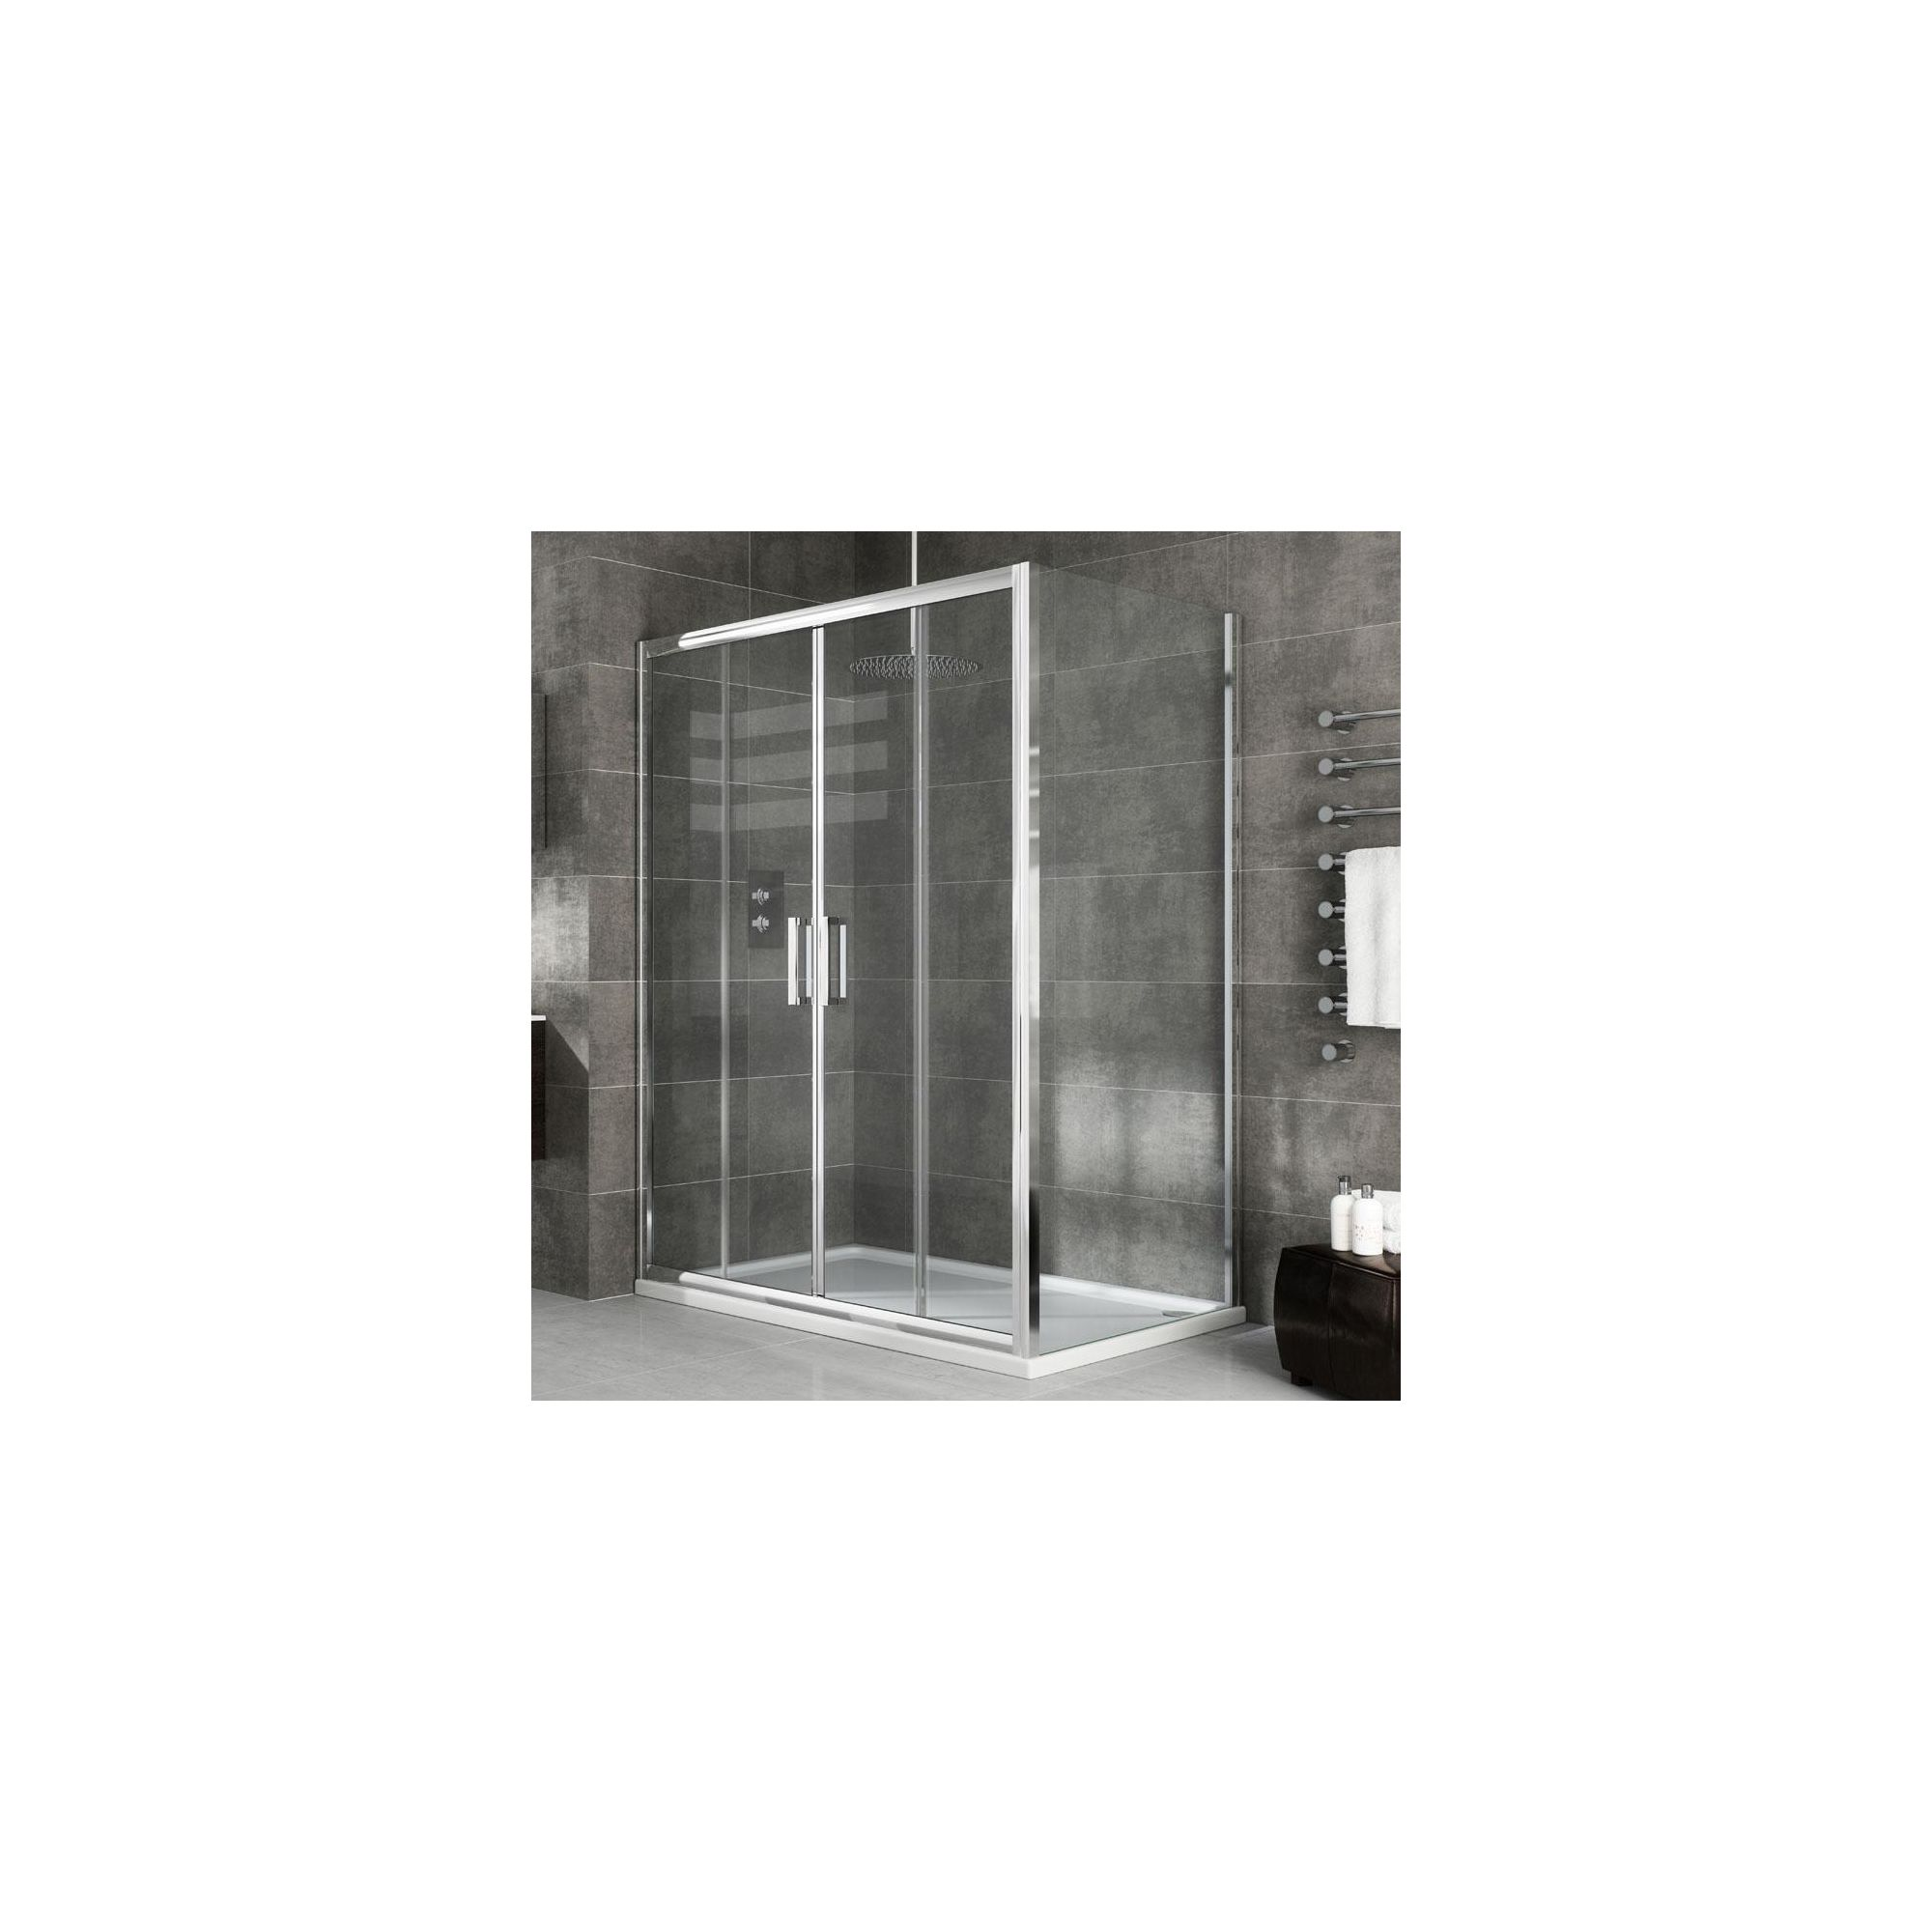 Elemis Eternity Two-Panel Jumbo Sliding Door Shower Enclosure, 1200mm x 800mm, 8mm Glass, Low Profile Tray at Tesco Direct